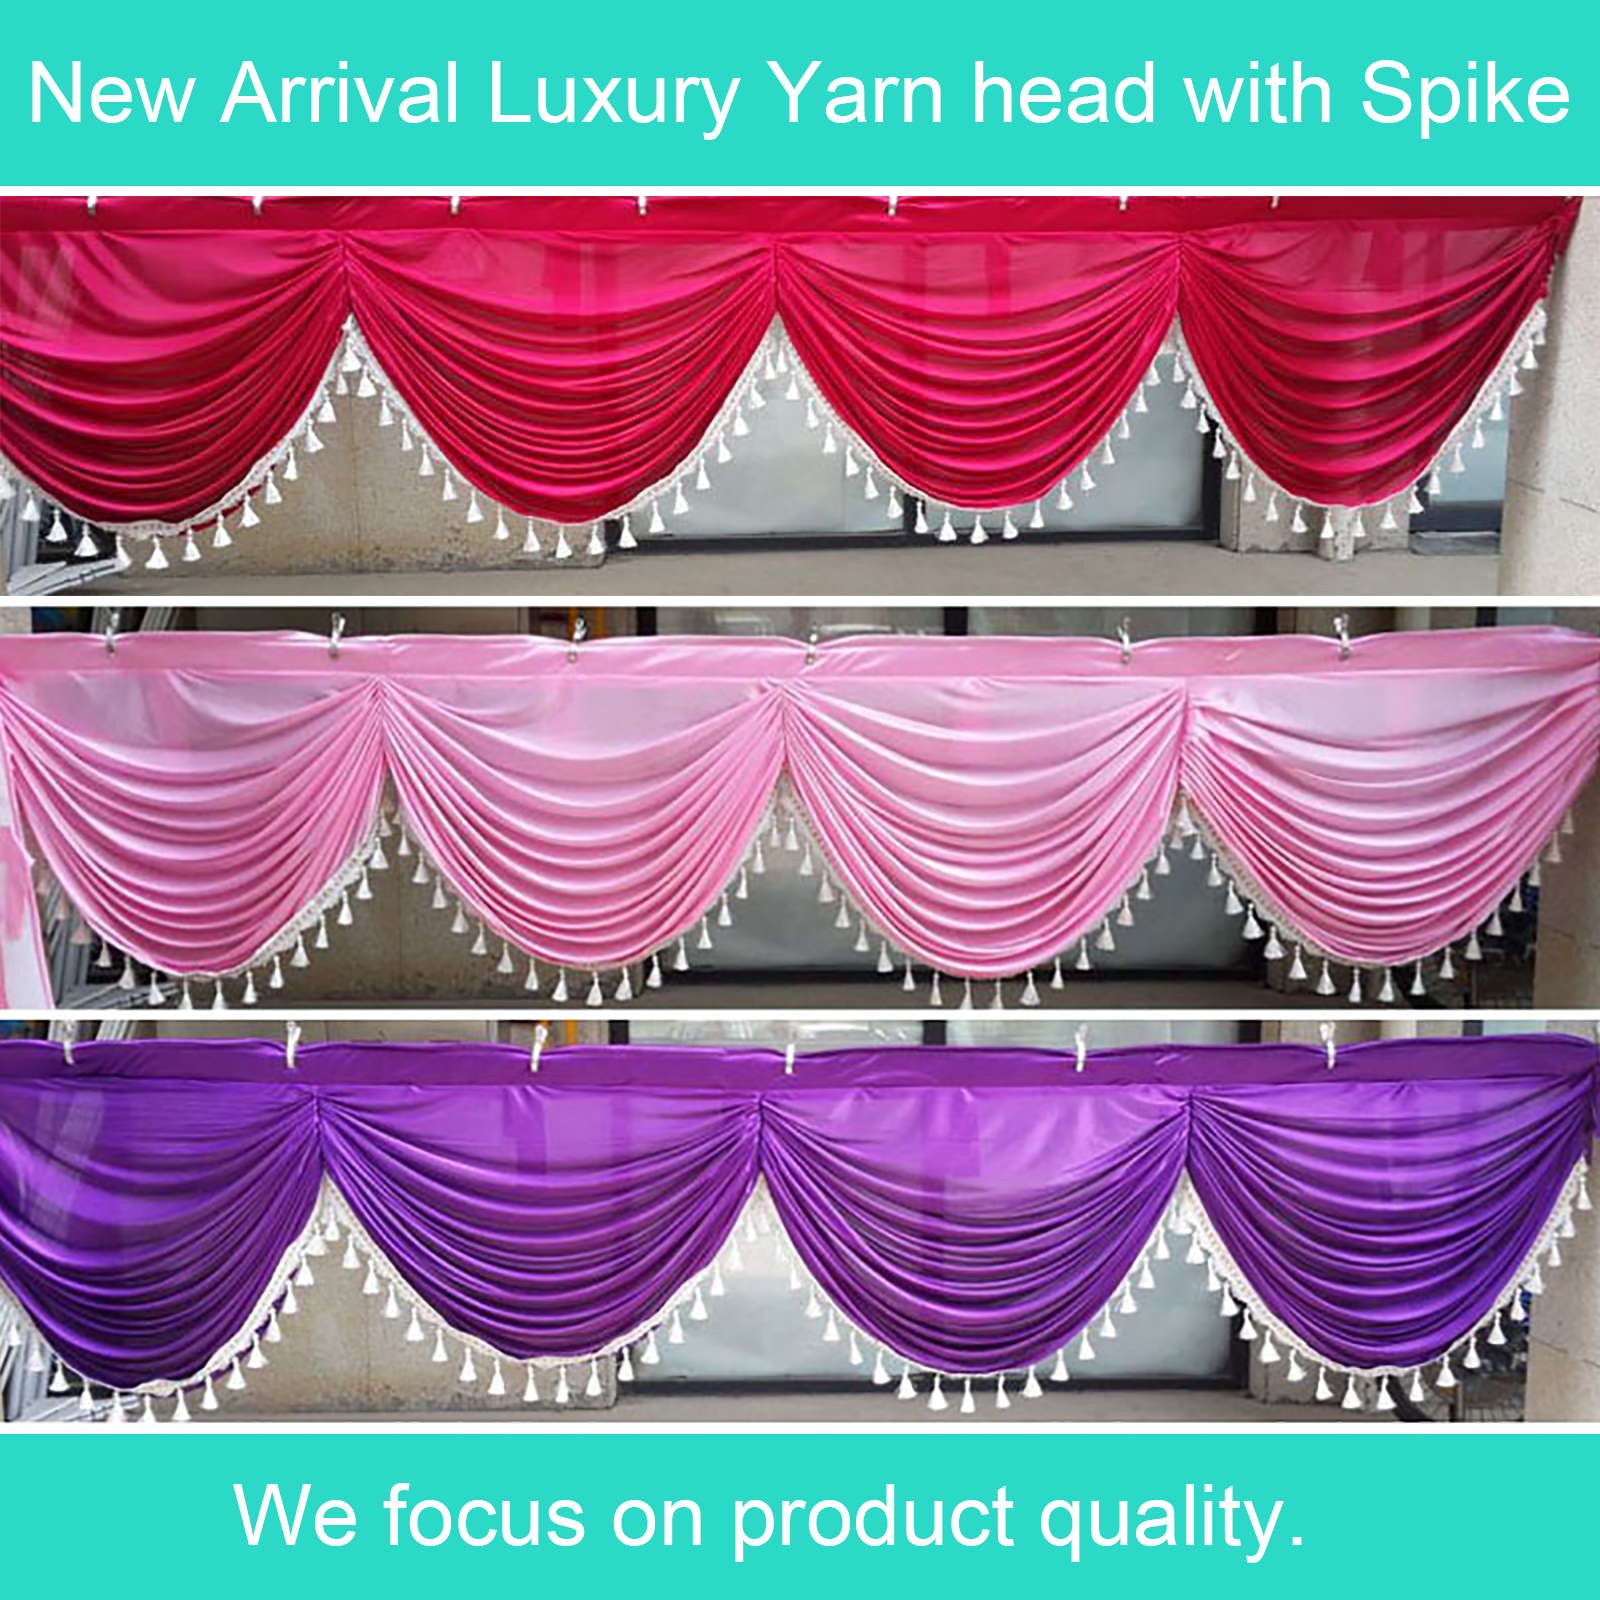 6M Wedding Backdrop Swags with DIY Tassel Table Swags for Event Party Decoration Luxury Table Skirt Swags Design for Wedding